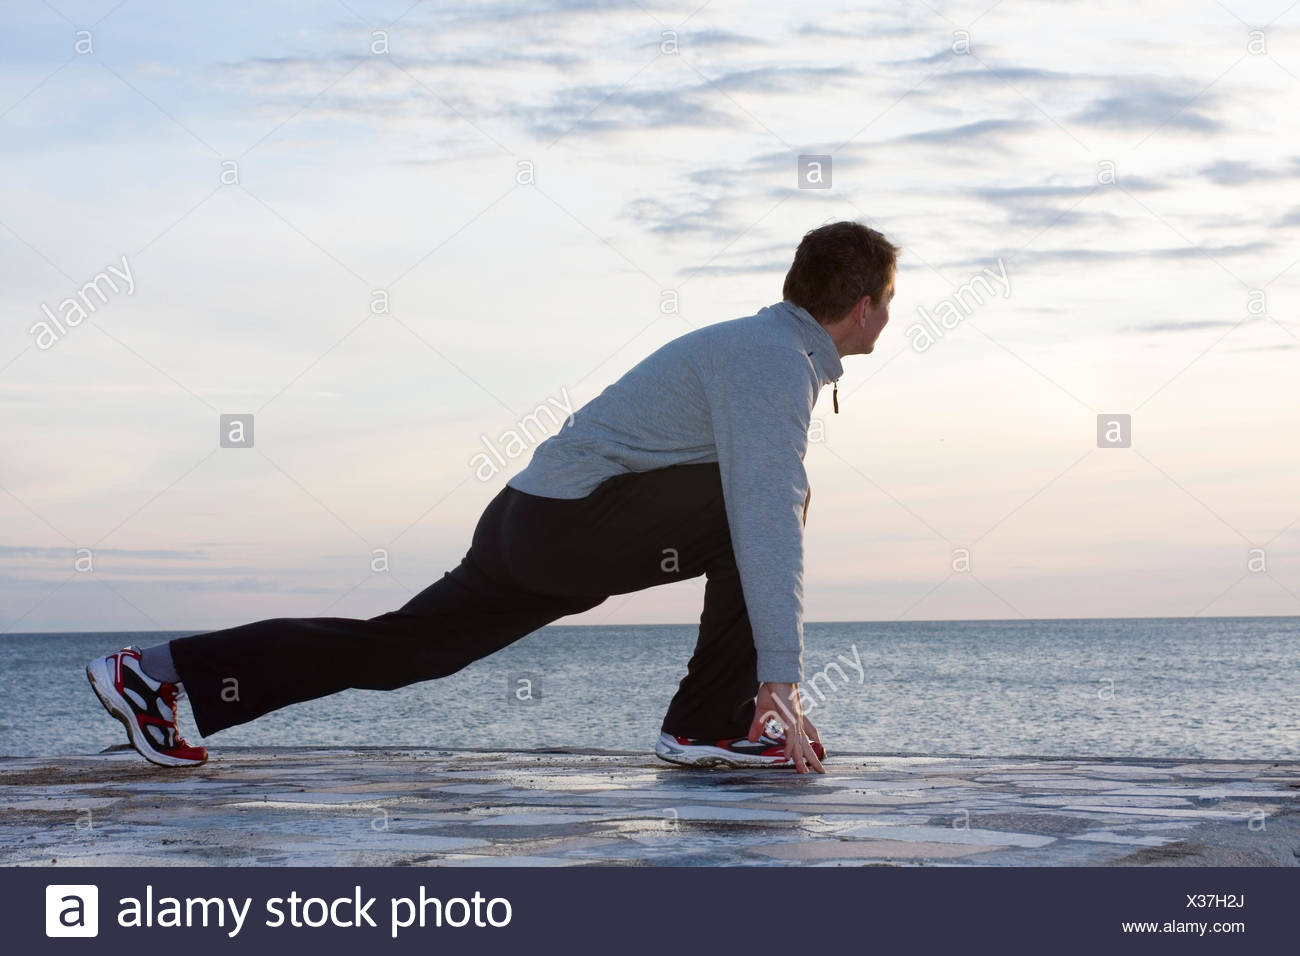 sport sports warm-up - Stock Image